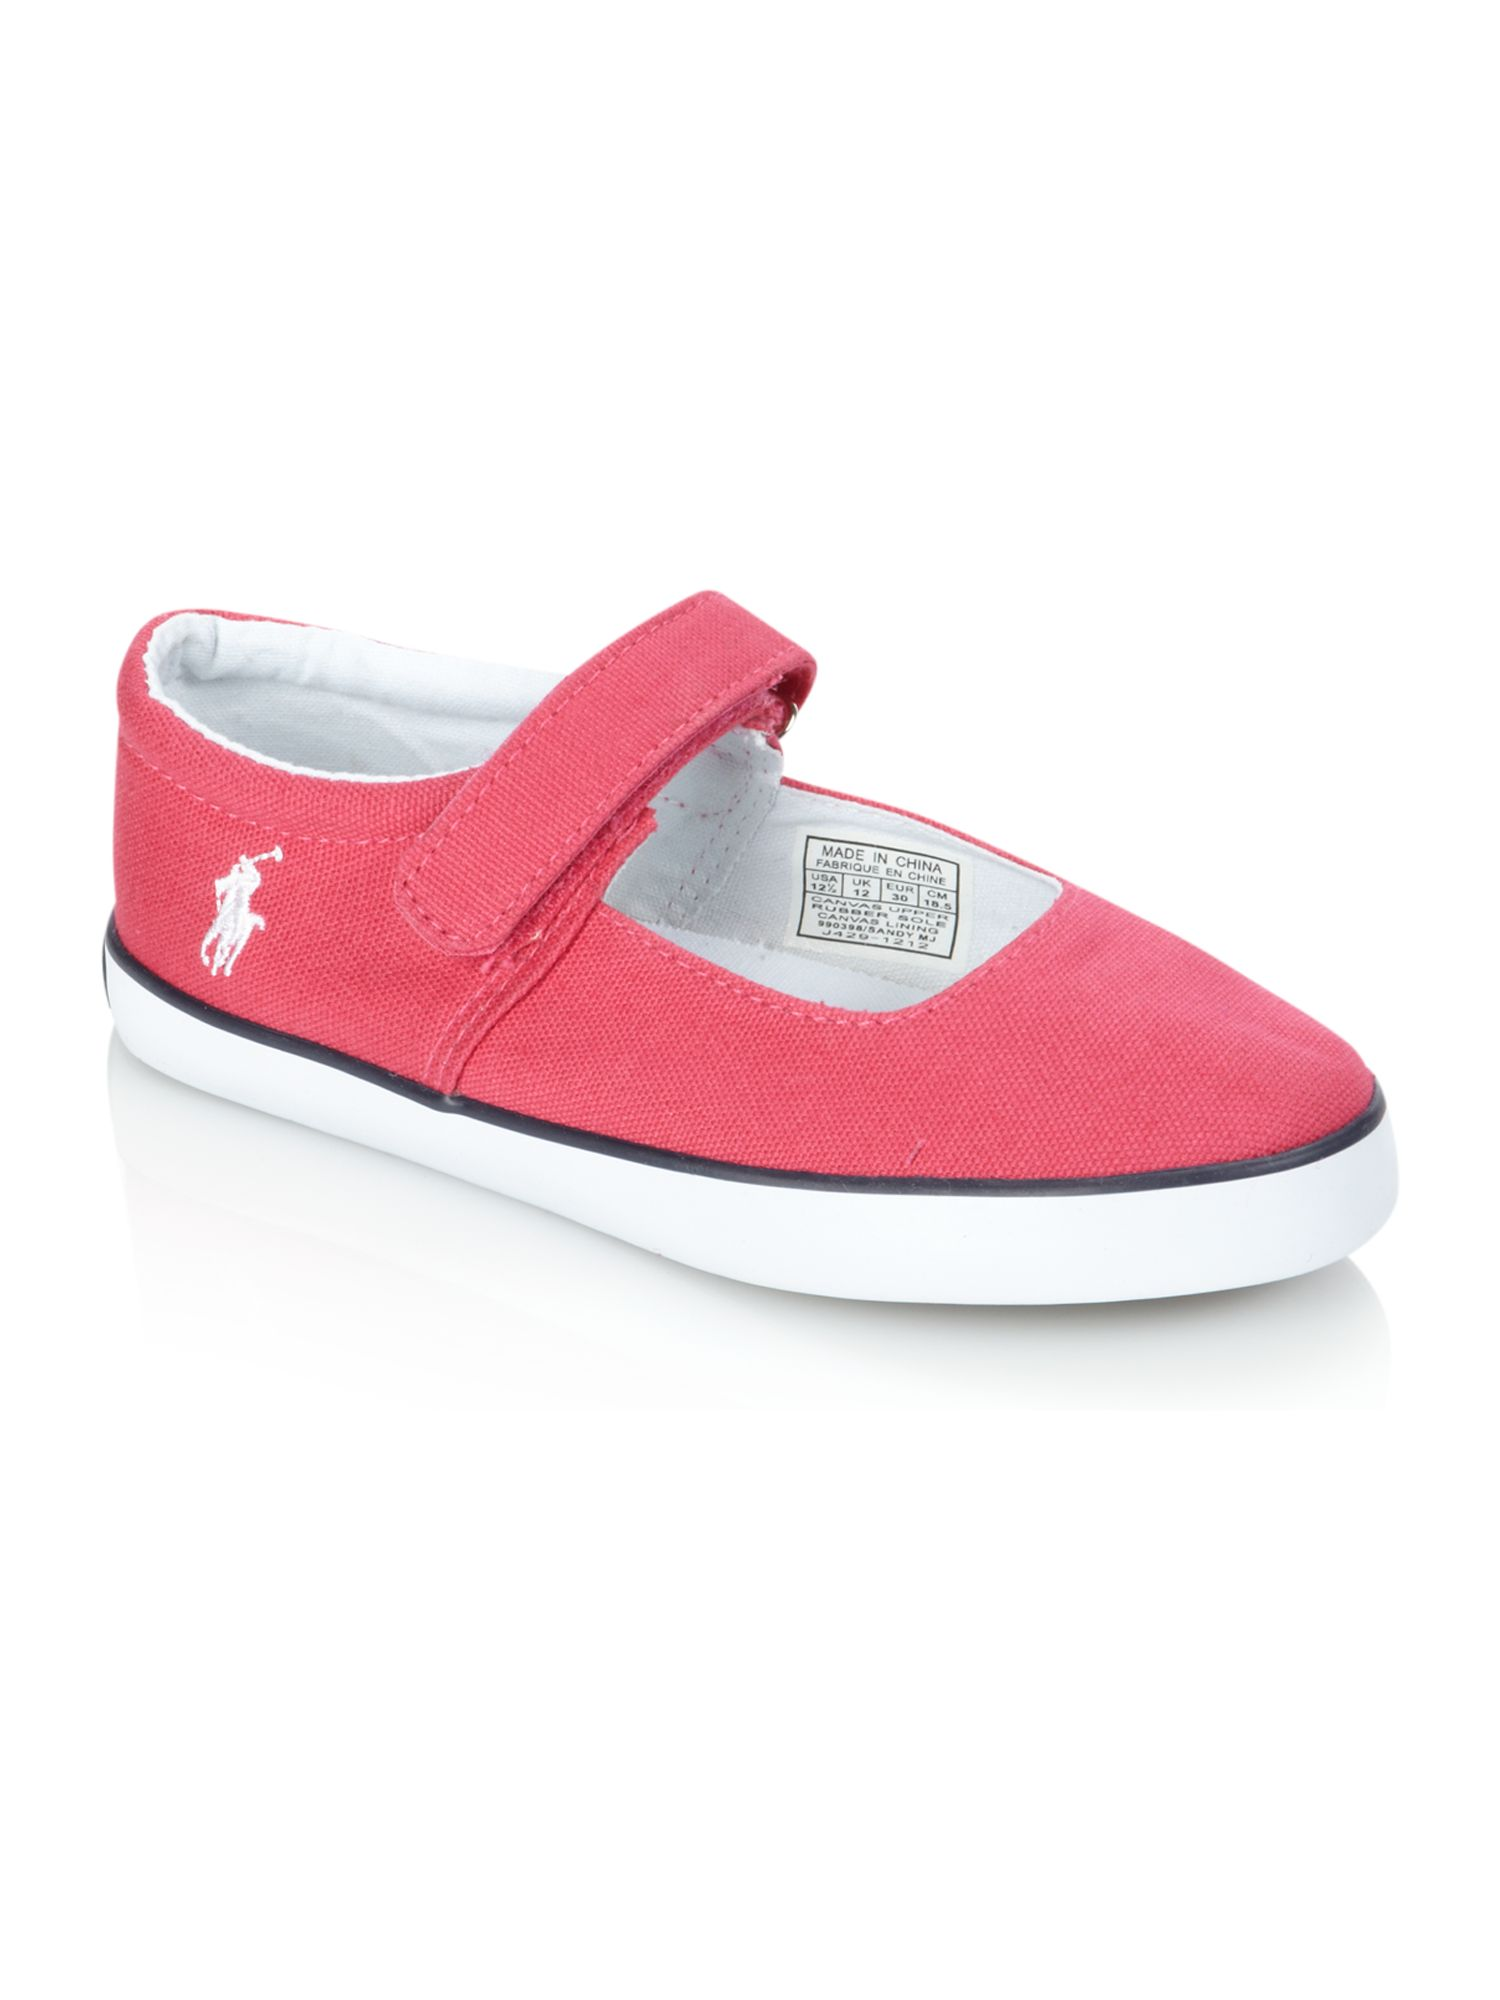 Girl`s canvas Mary Jane style shoes